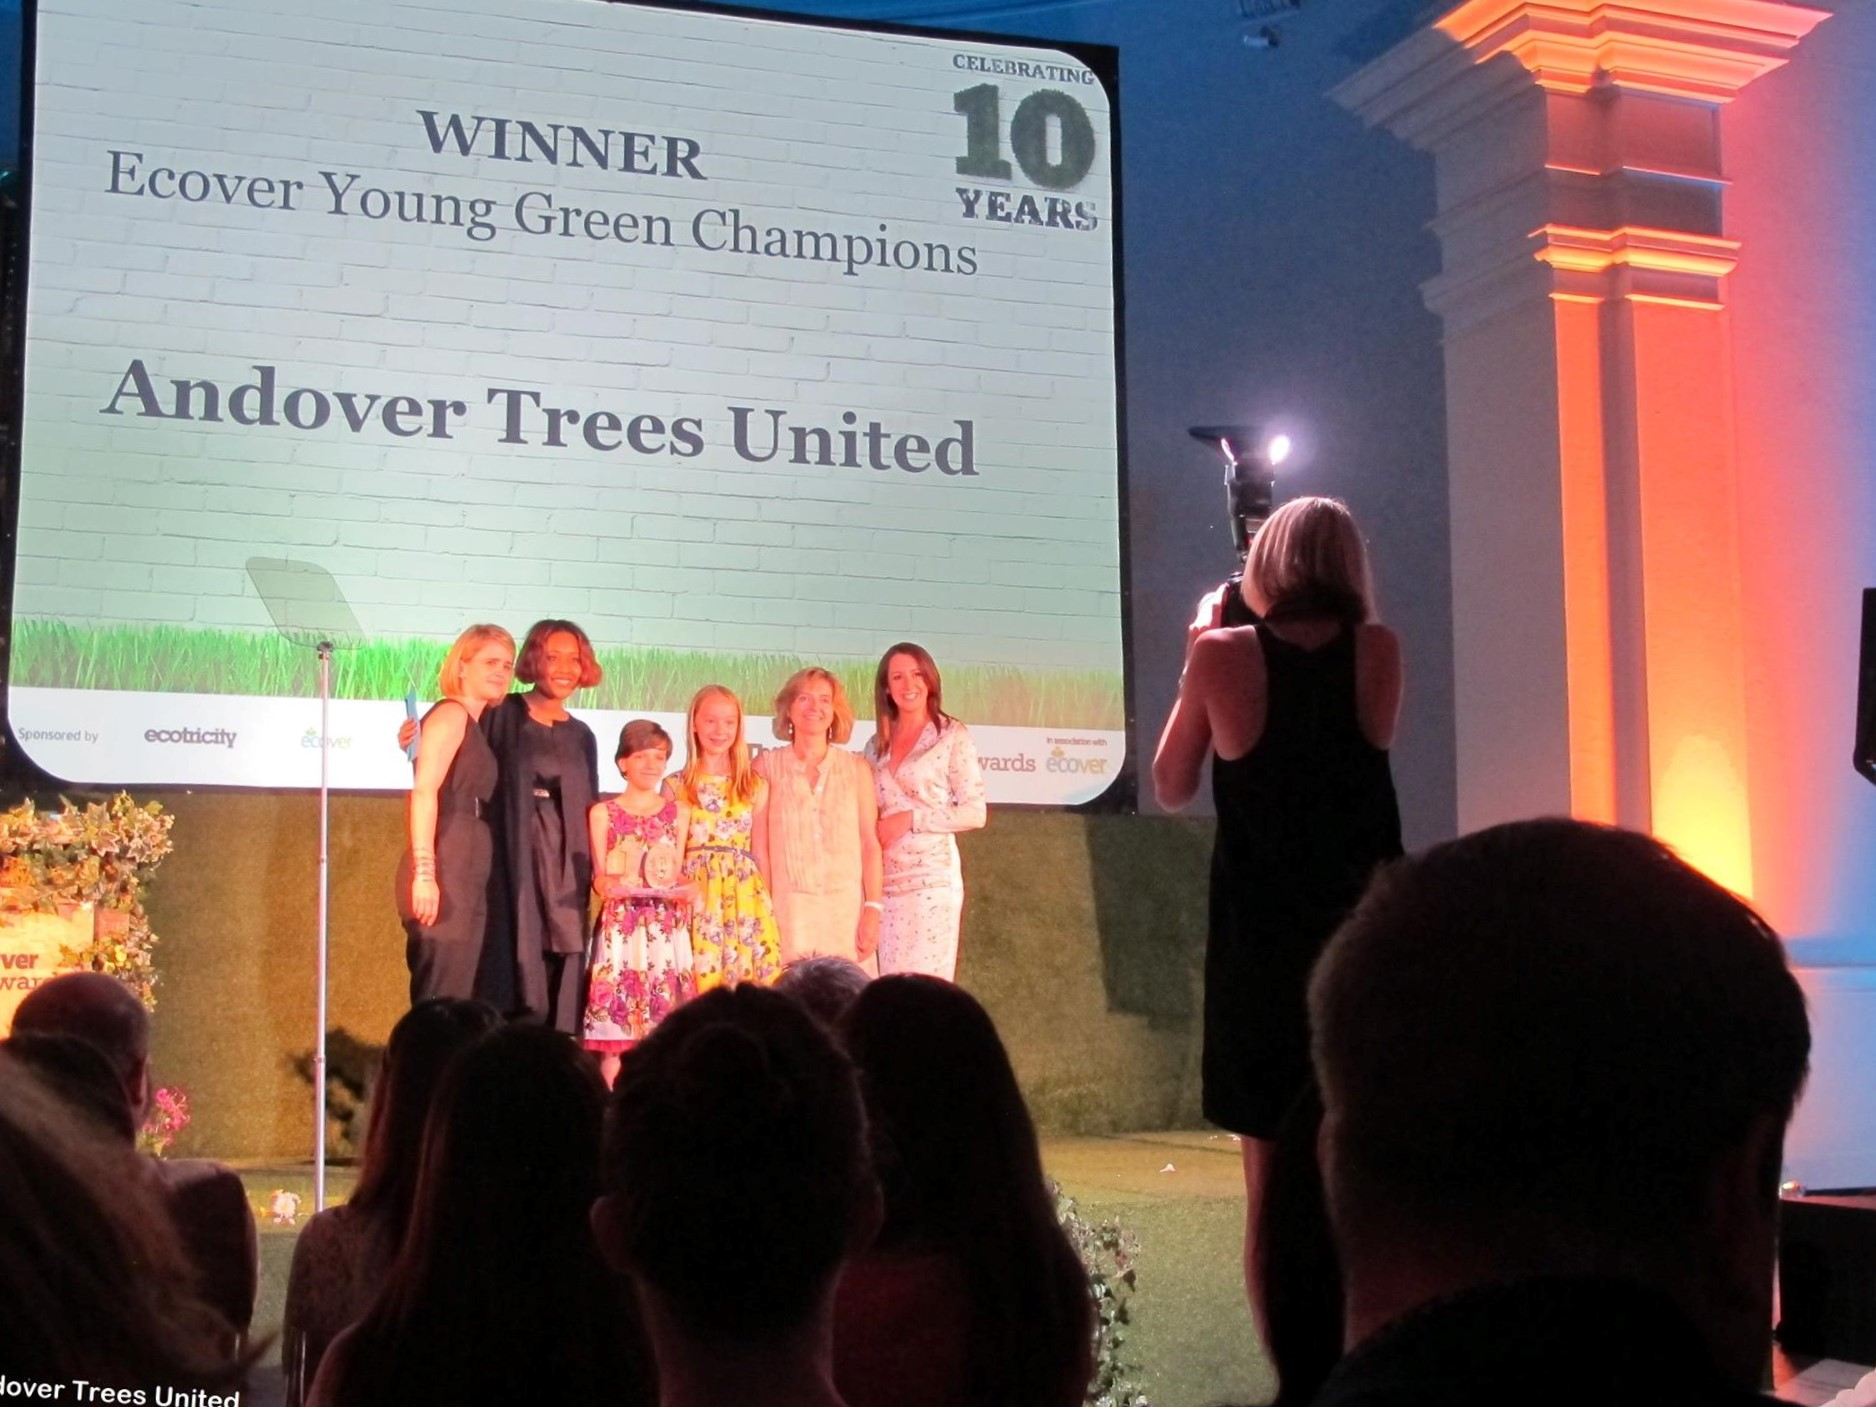 2015 Guardian Observer Ethical Awards WINNER Young Green Champions.jpg